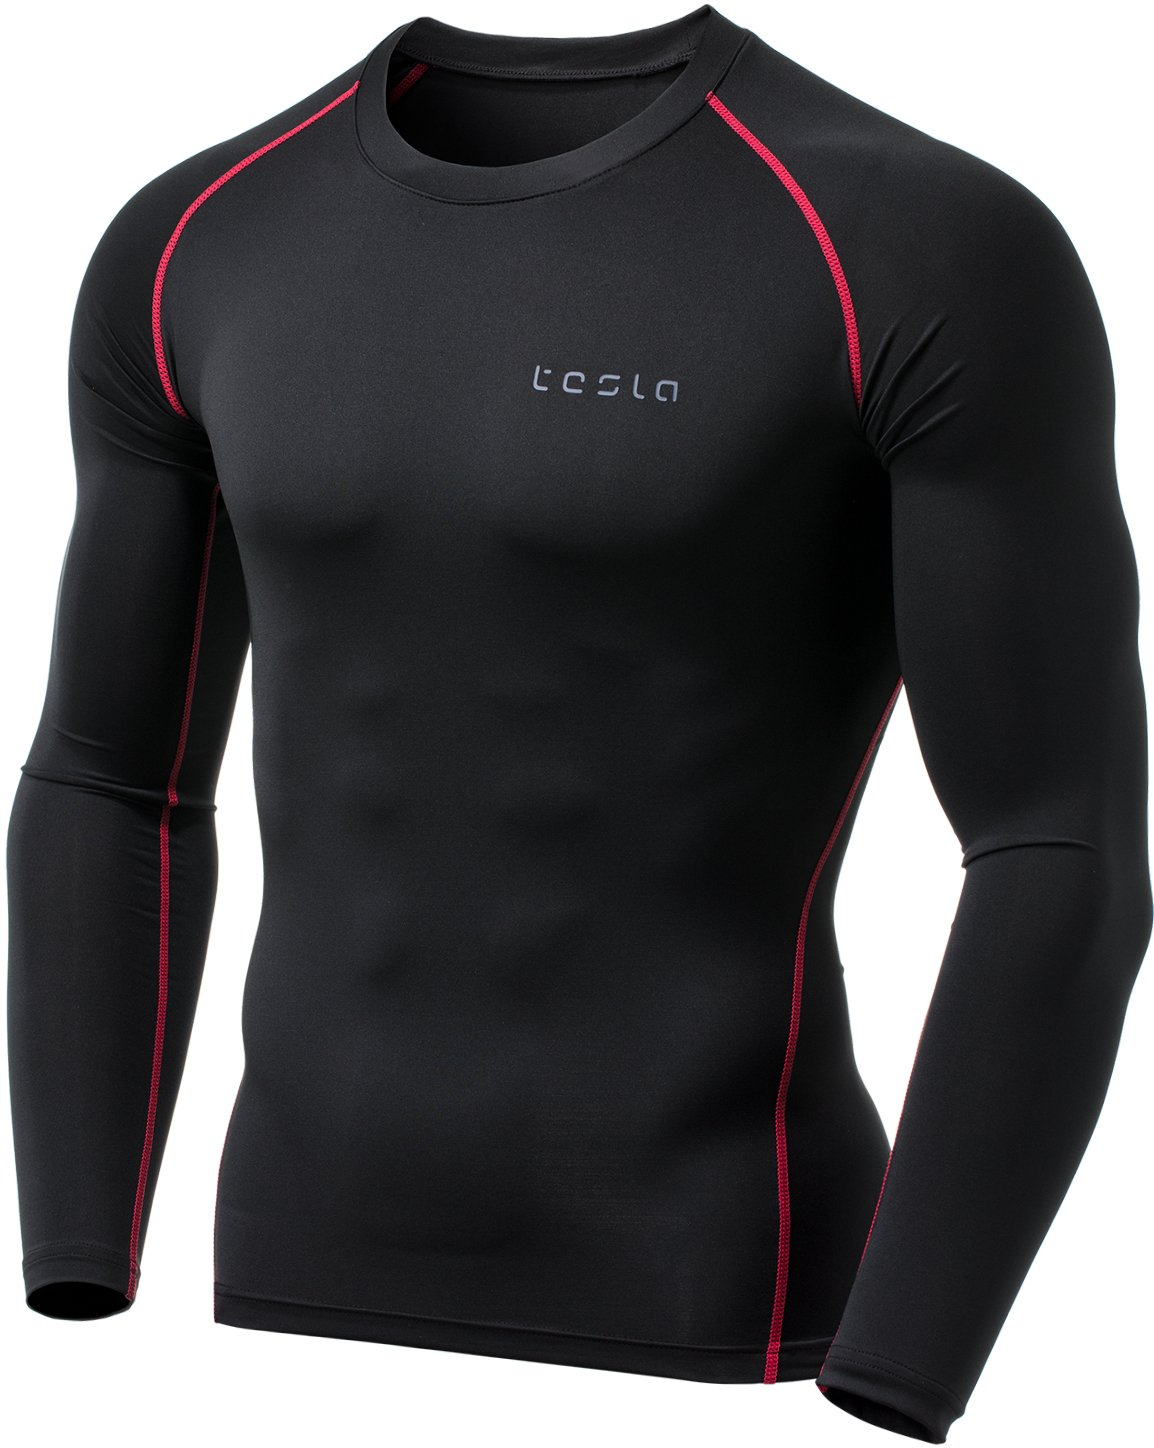 TSLA Men's Thermal Wintergear Compression Baselayer Long Sleeve Top, Thermal Athletic(yud34) - Black & Red, Large by TSLA